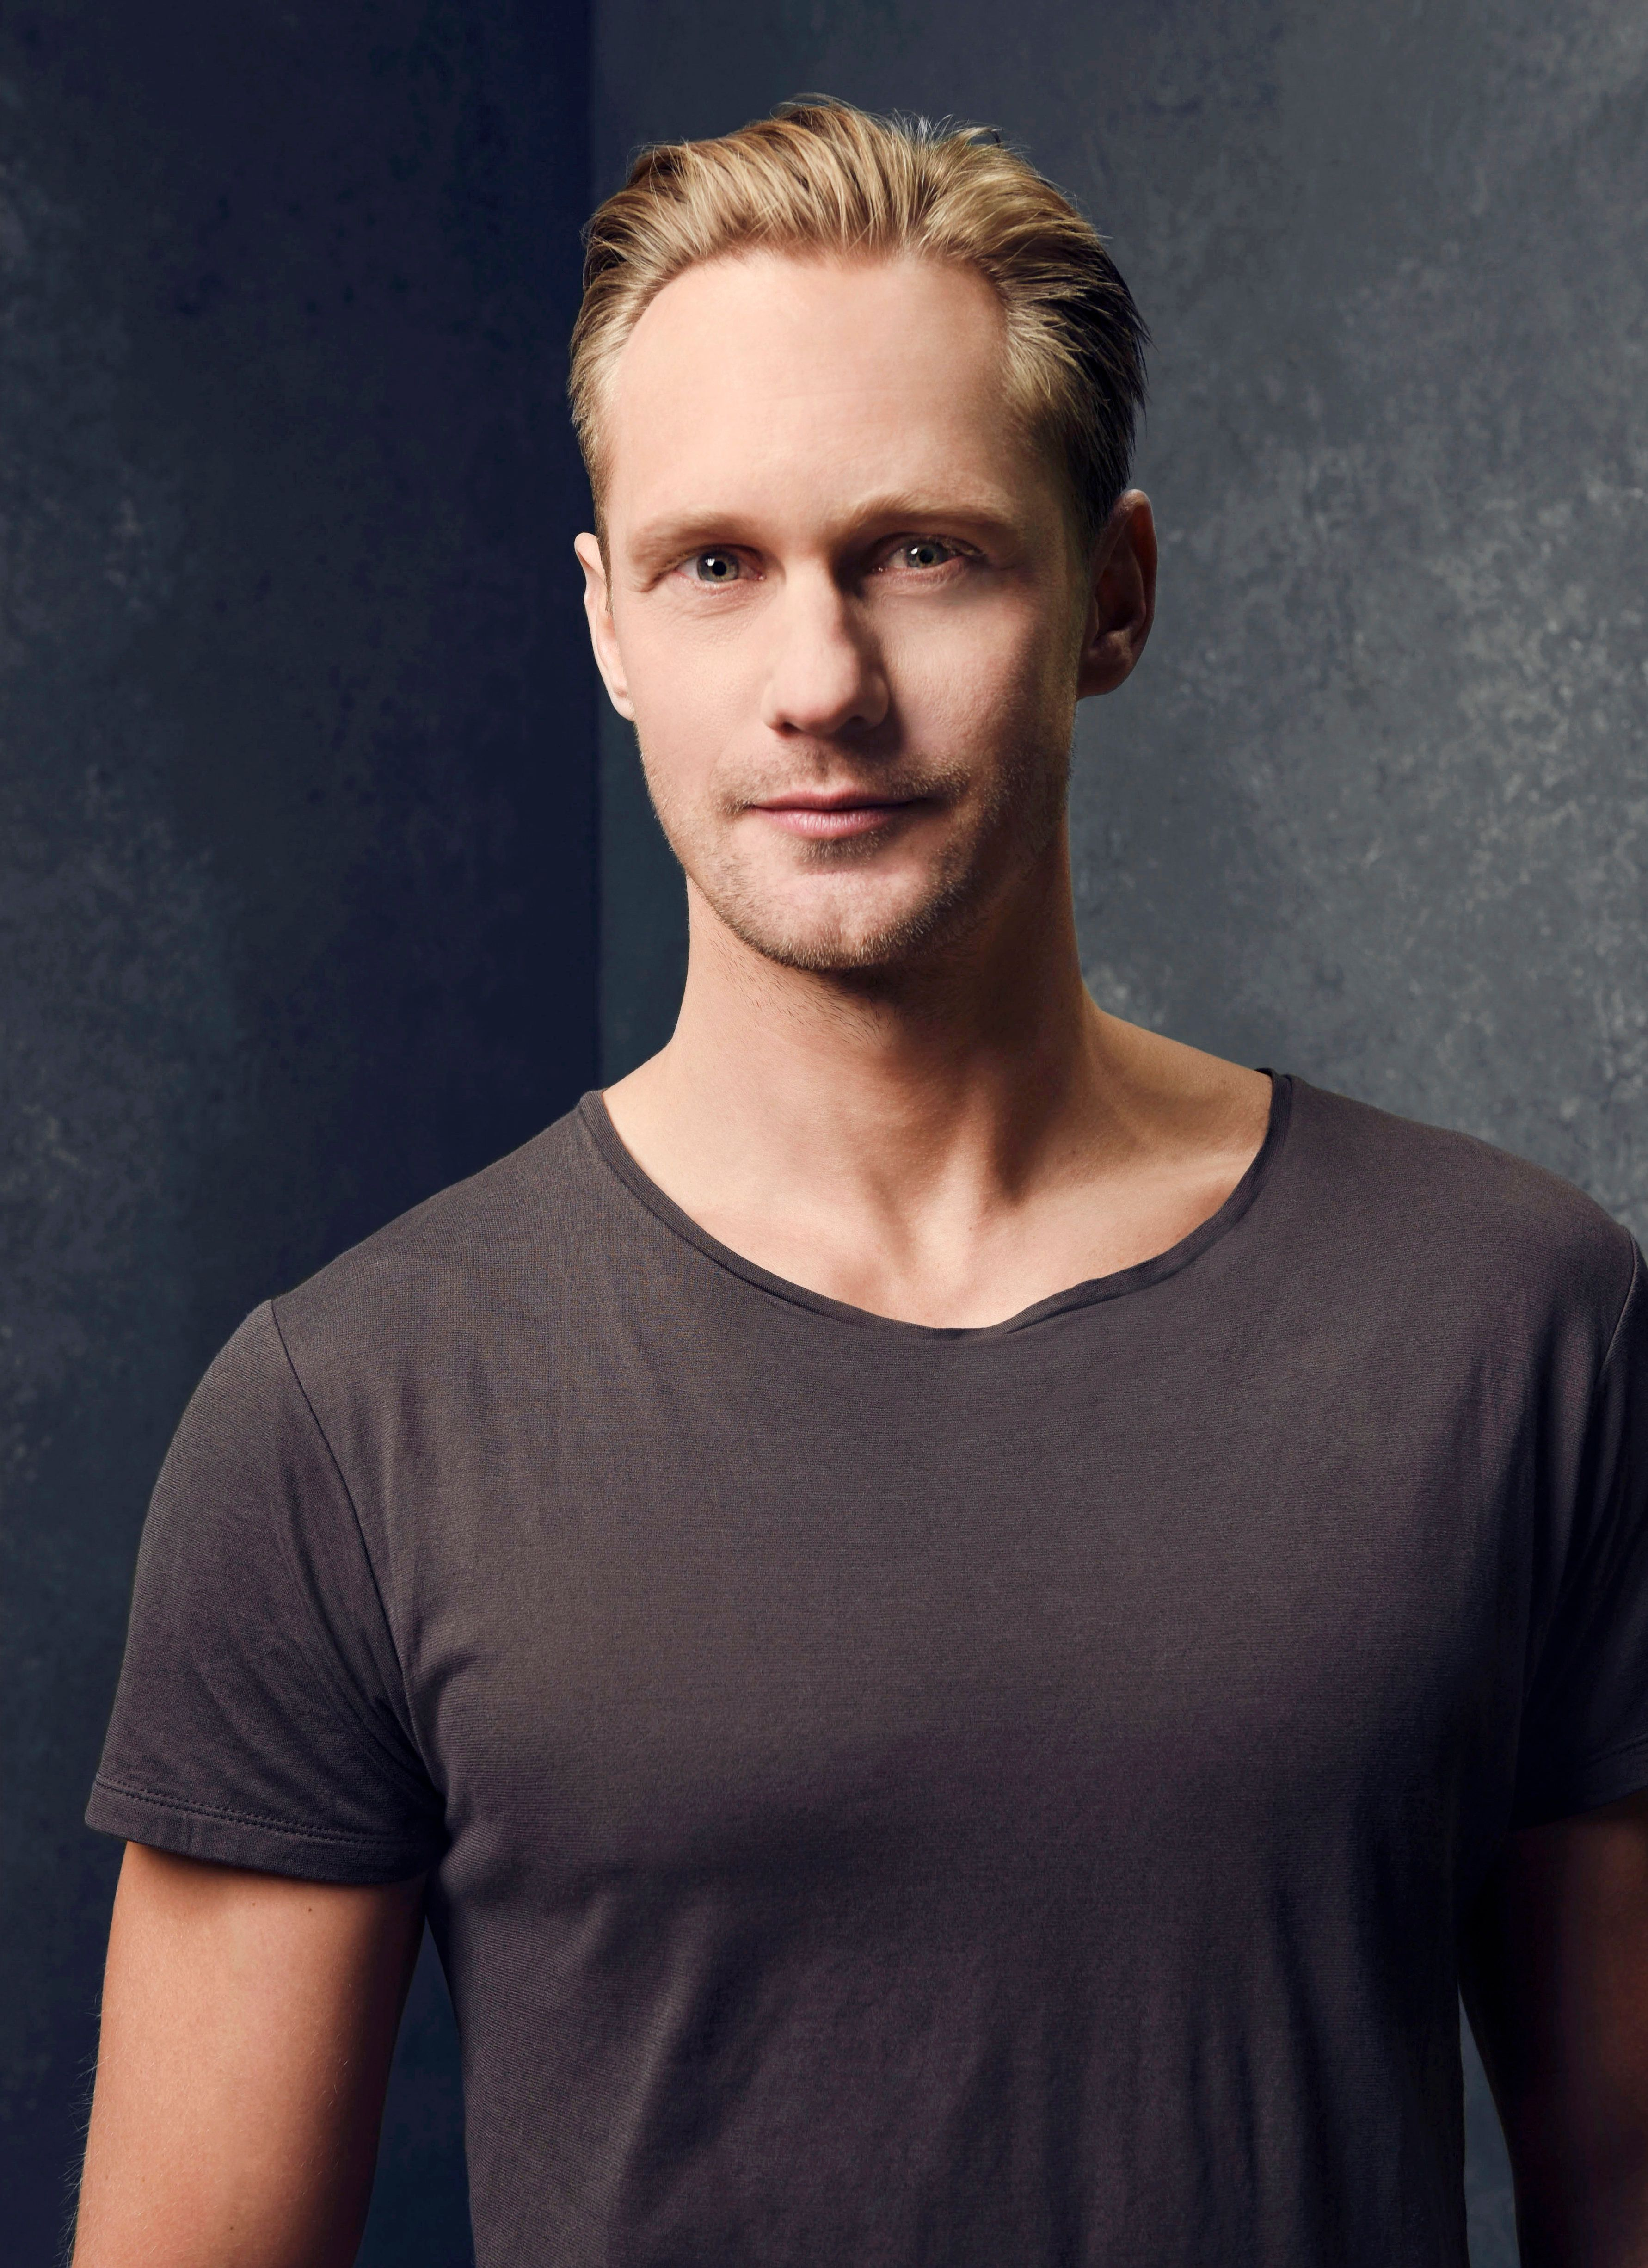 PARK CITY, UT - JANUARY 23: Actor Alexander Skarsgard poses for a portraits at the 2015 Sundance Film Festival on January 23, 2015 in Park City, Utah. (Photo by Larry Busacca/Getty Images)